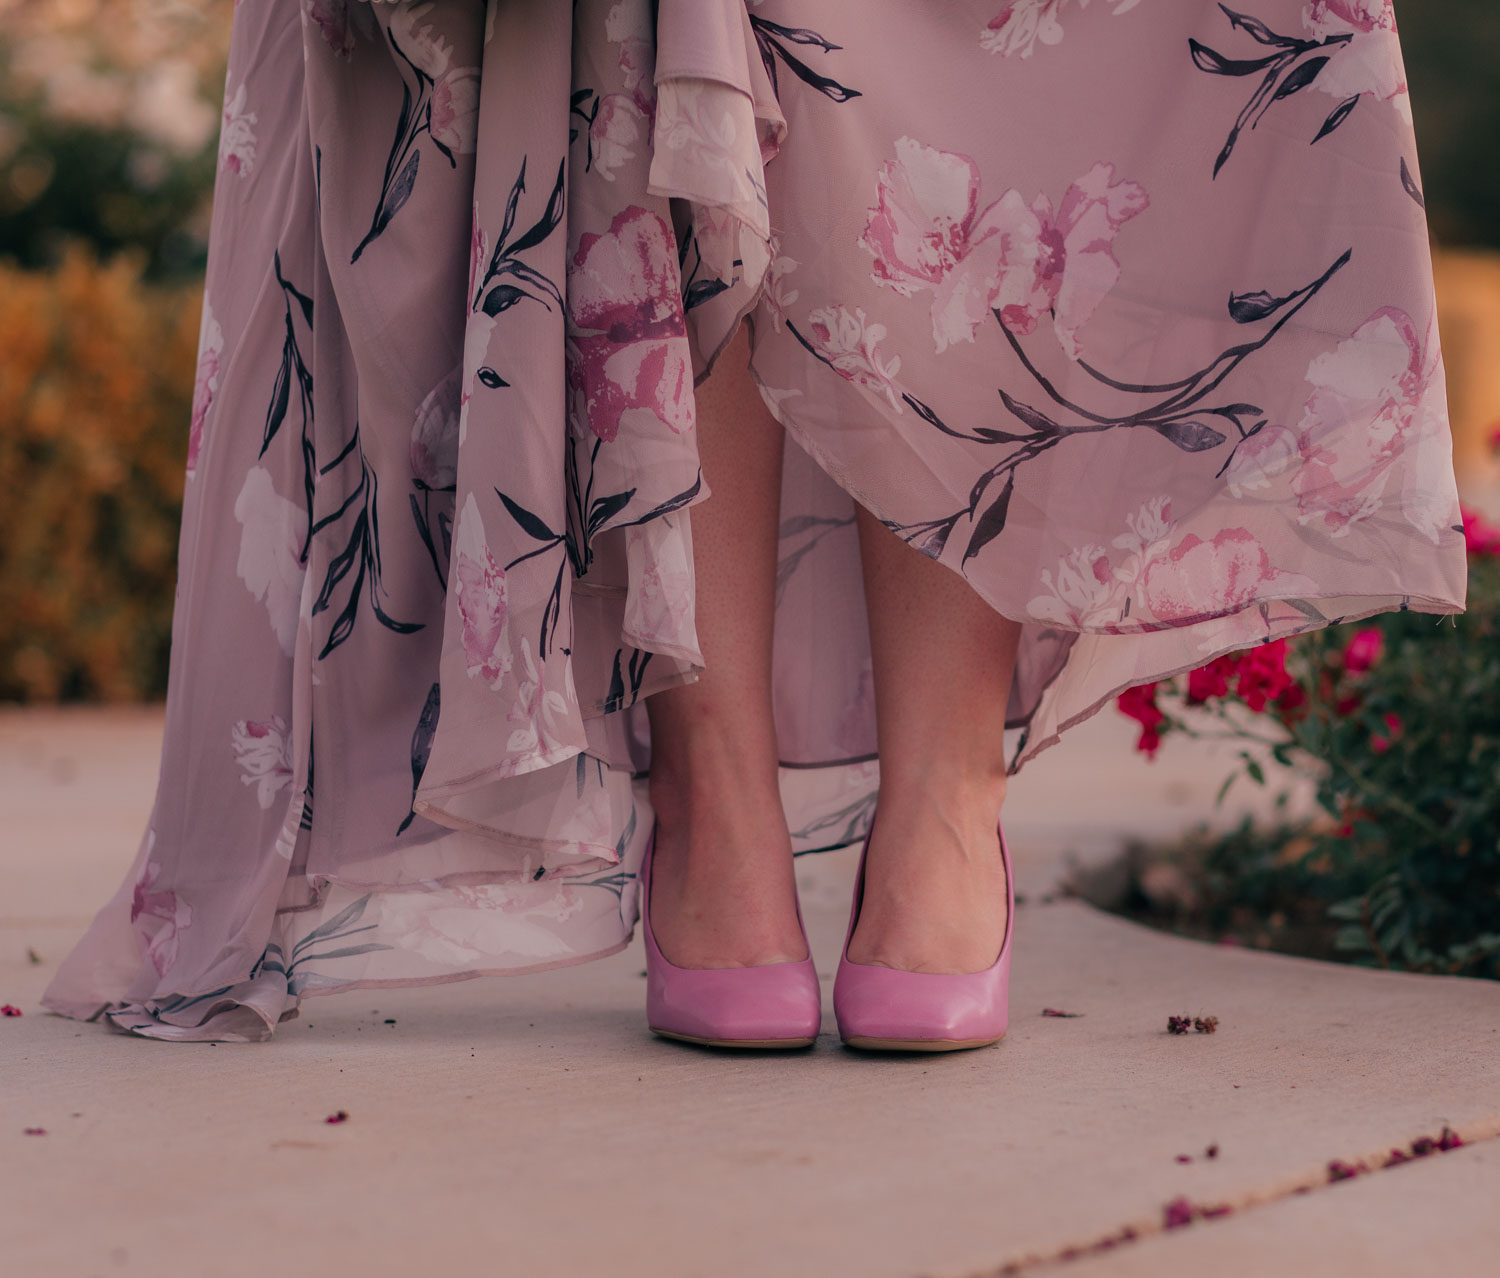 Feminine fashion blogger Elizabeth Hugen of Lizzie in Lace shares A Flattering Maxi Dress for Every Body Type including this floral Chicwish maxi dress and purple Franco Sarto heels